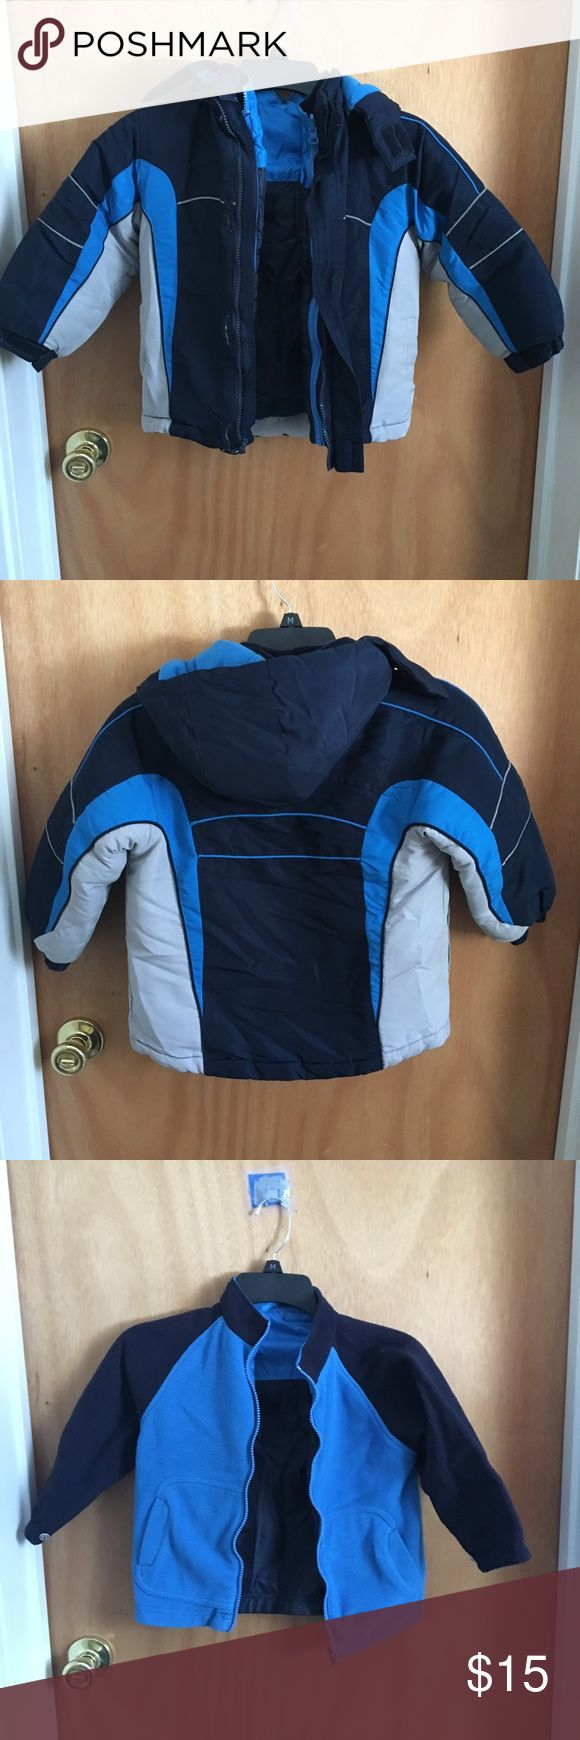 Toddlers layered jacket Waterproof jacket with fleece jacket lining. Worn few times, great condition Faded Glory Jackets & Coats